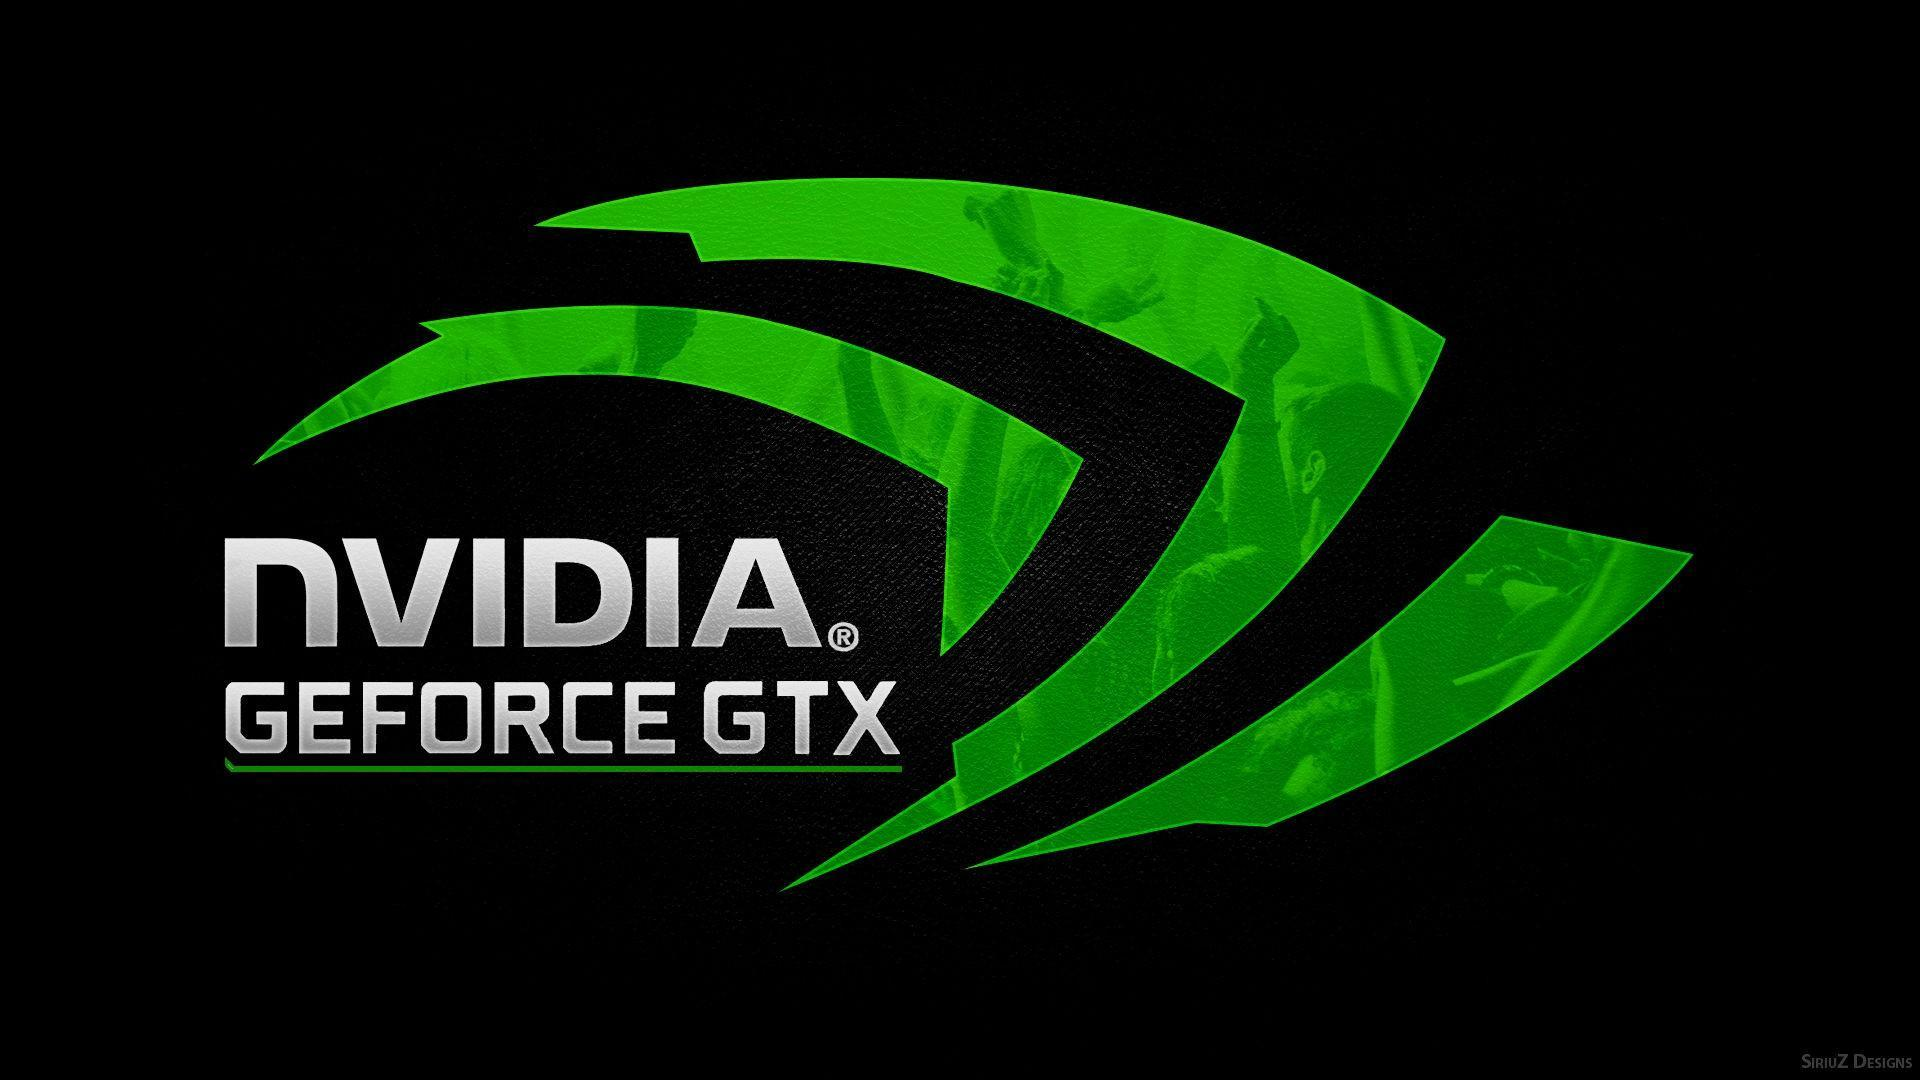 Nvidia GeForce GTX 1660 Ti Leaks Indicate February 22 Launch, $279 Price